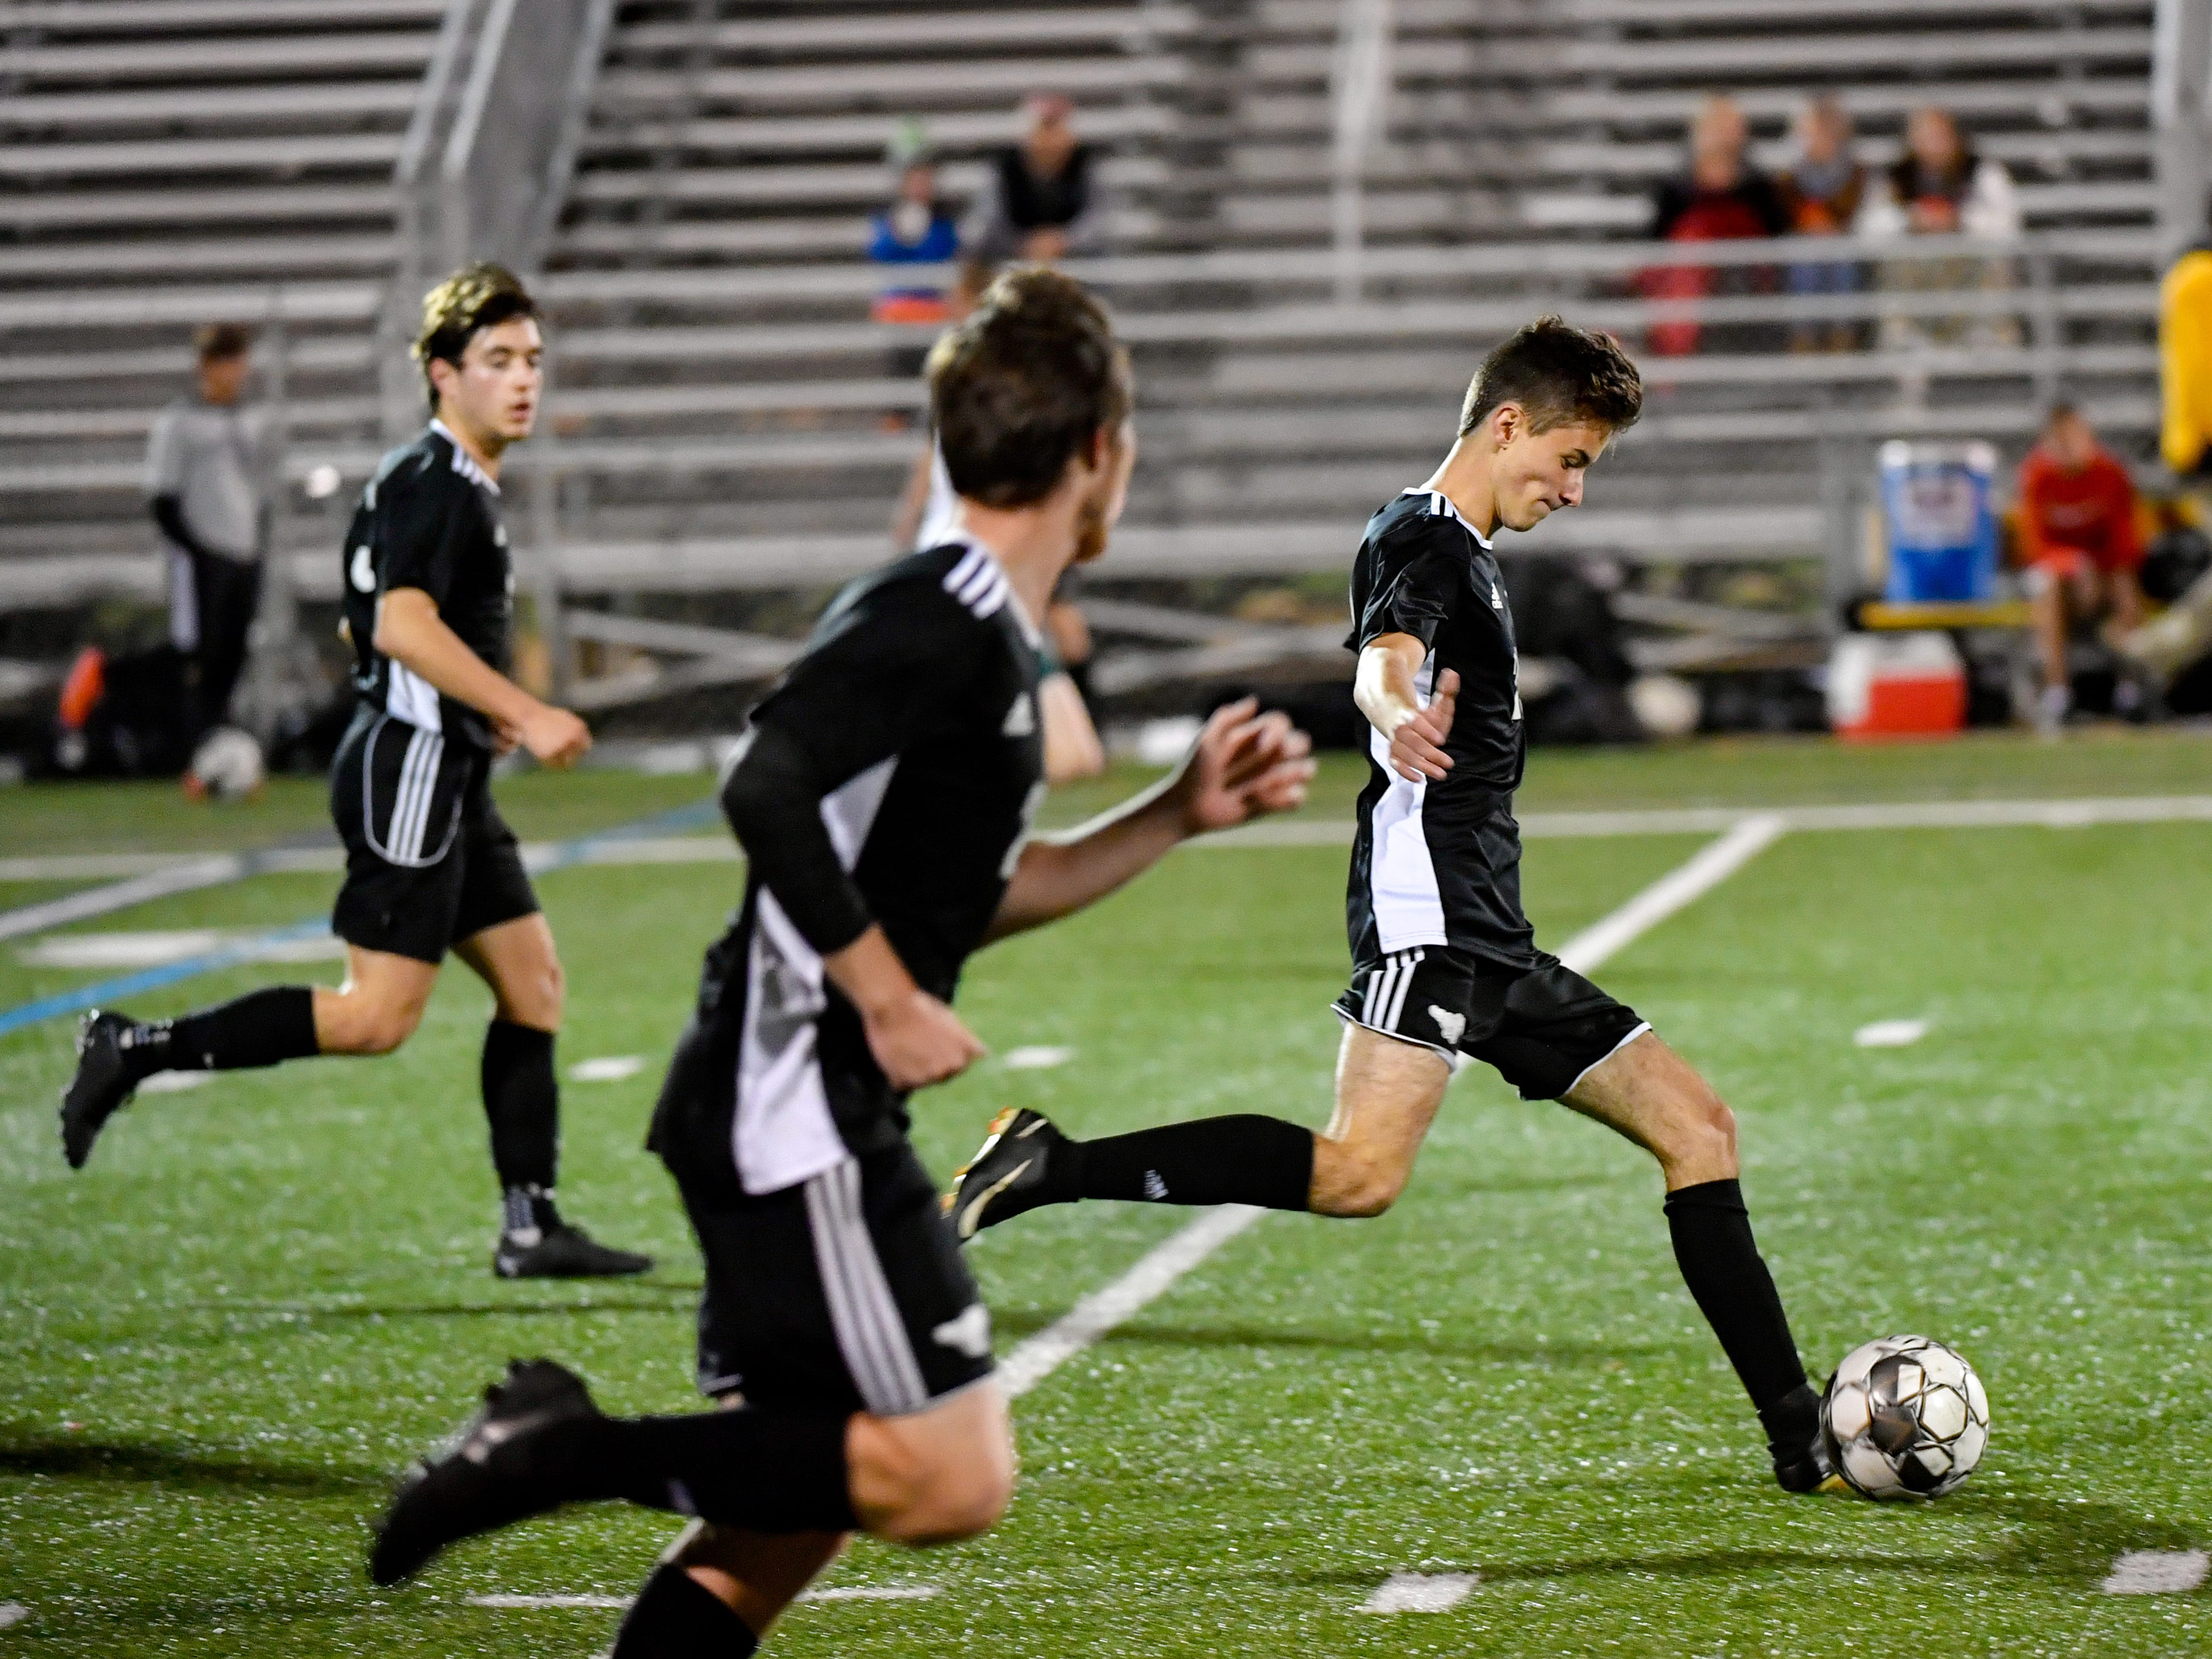 Spencer Wells (29) leads the attack during the boys soccer game between South Western and York Catholic, October 16, 2018. The Mustangs beat the Irish 2-1.